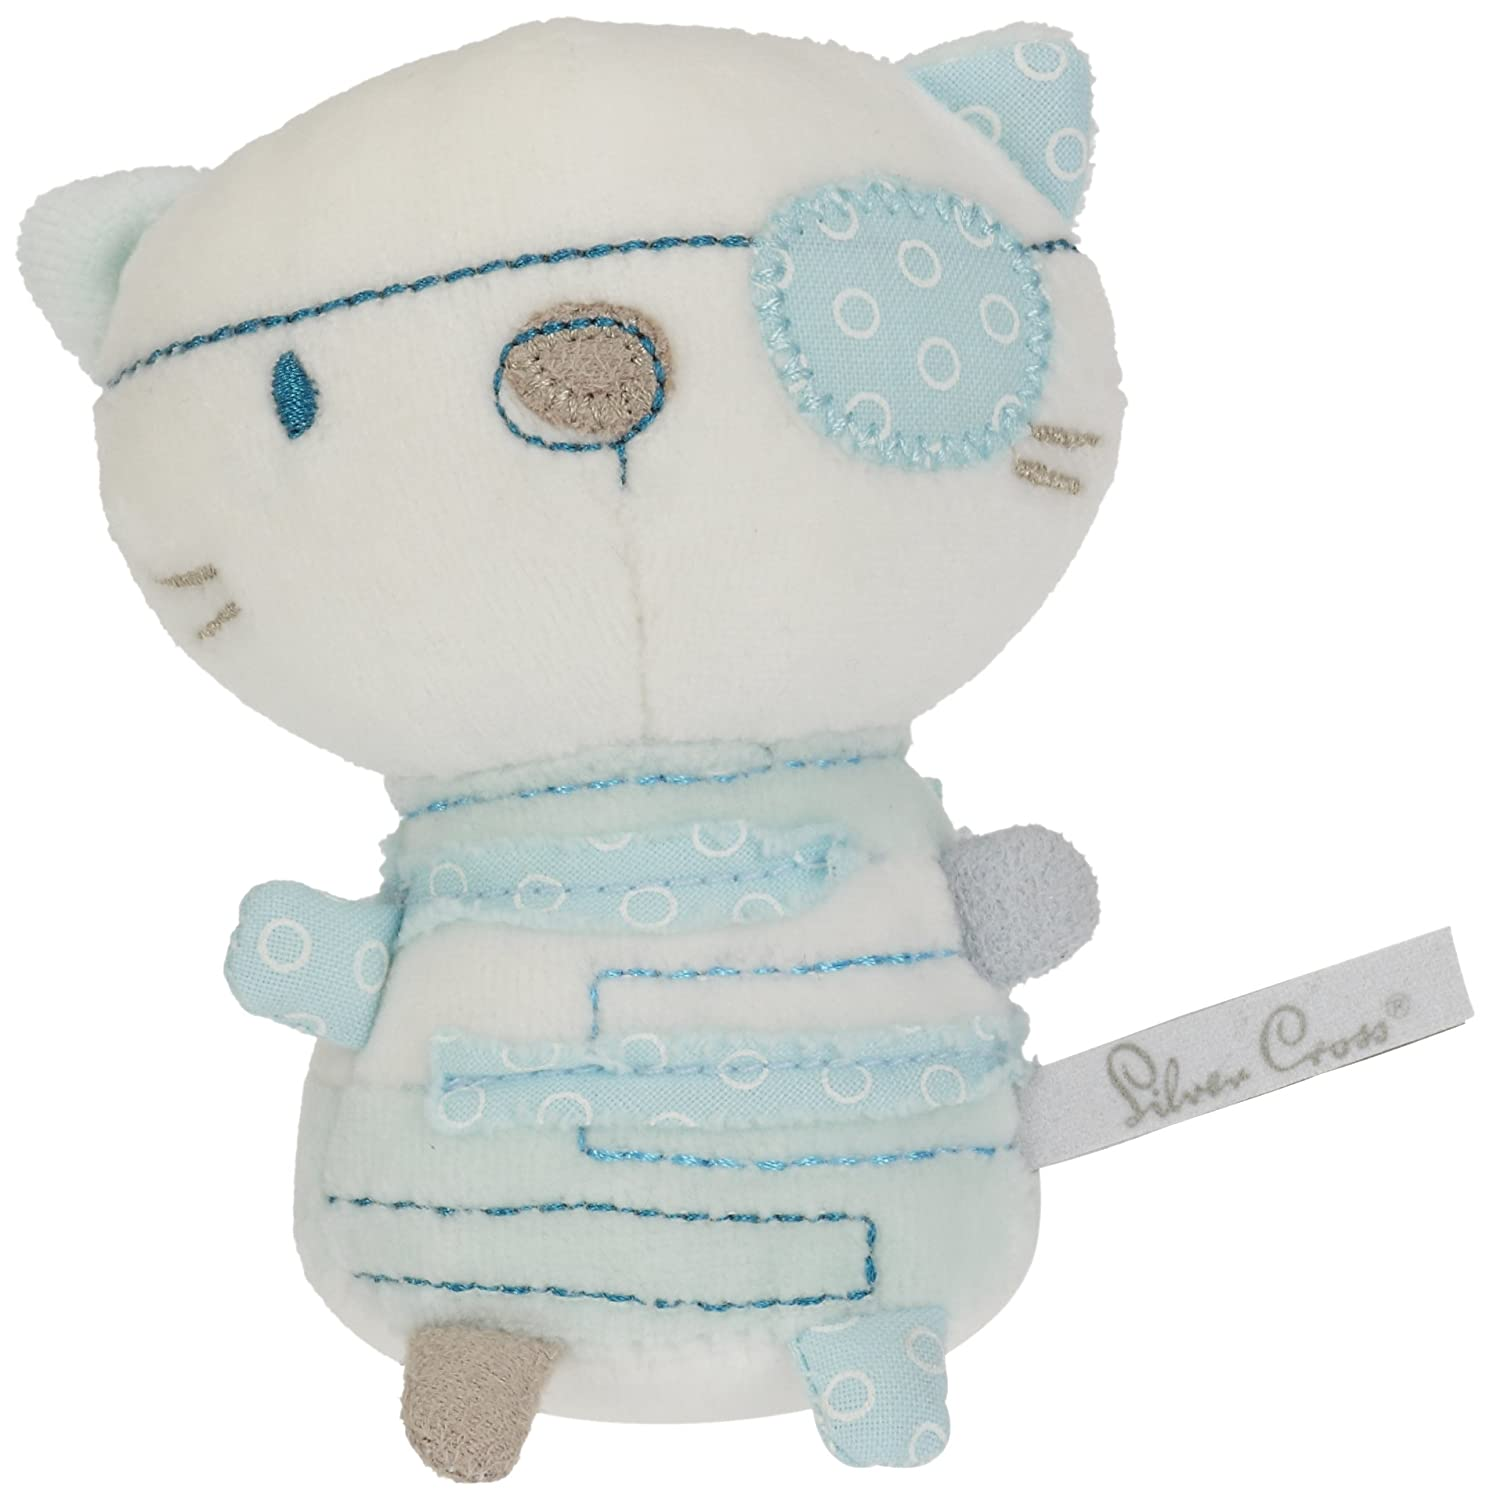 BabyToLove Doudou Le Chat Pirate Silver Cross 1005.24